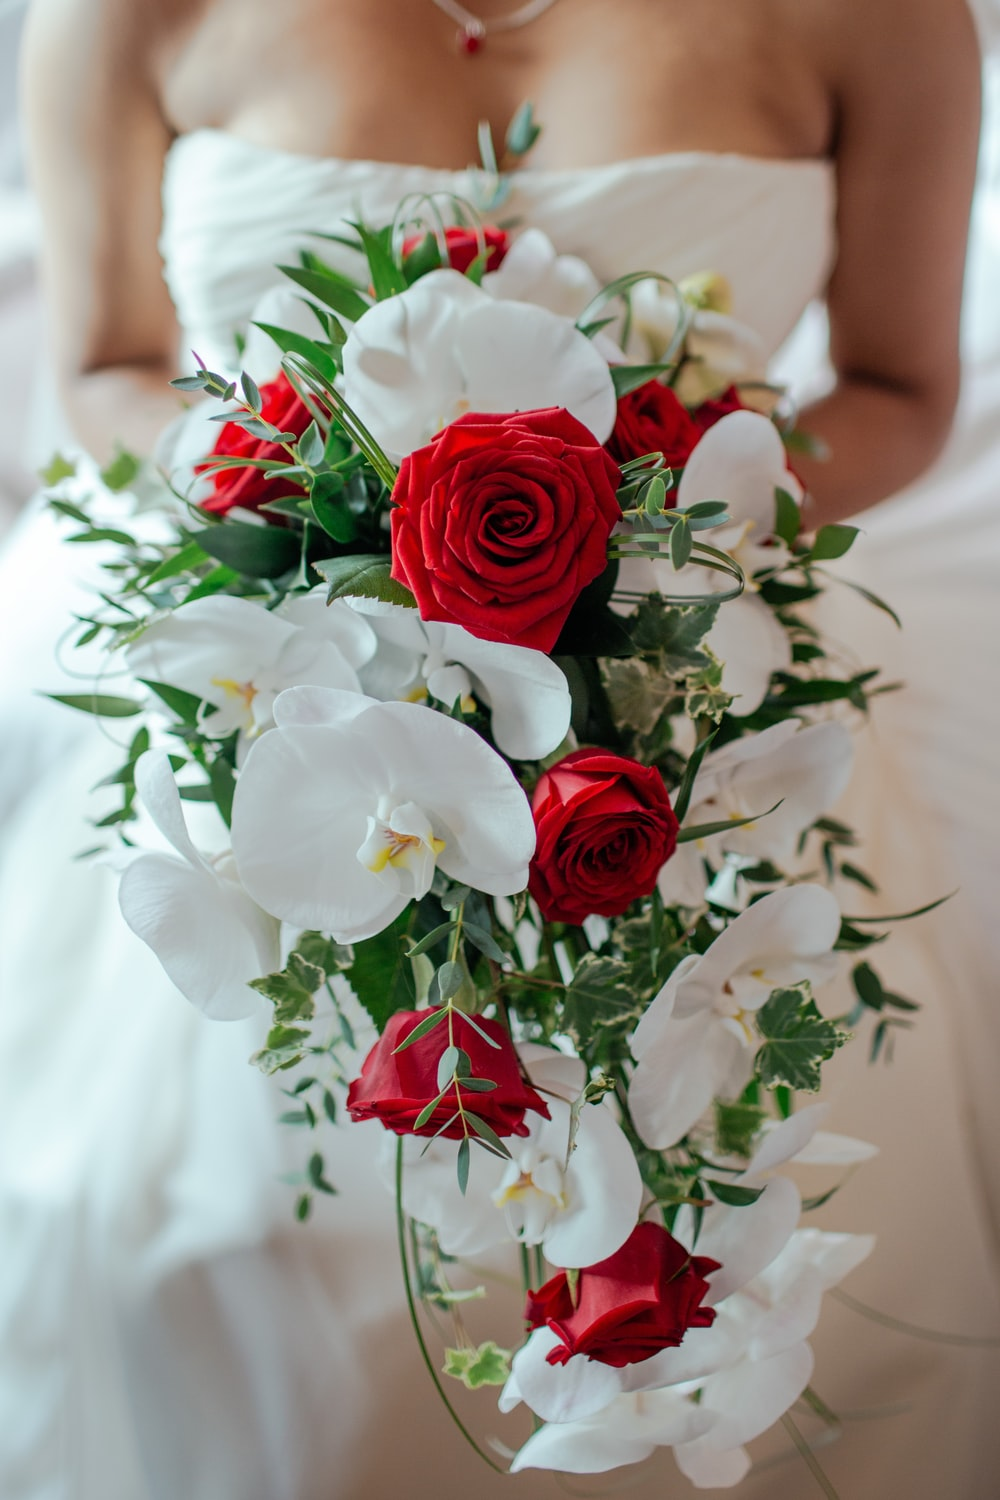 Wedding Bouquet Pictures Download Free Images On Unsplash